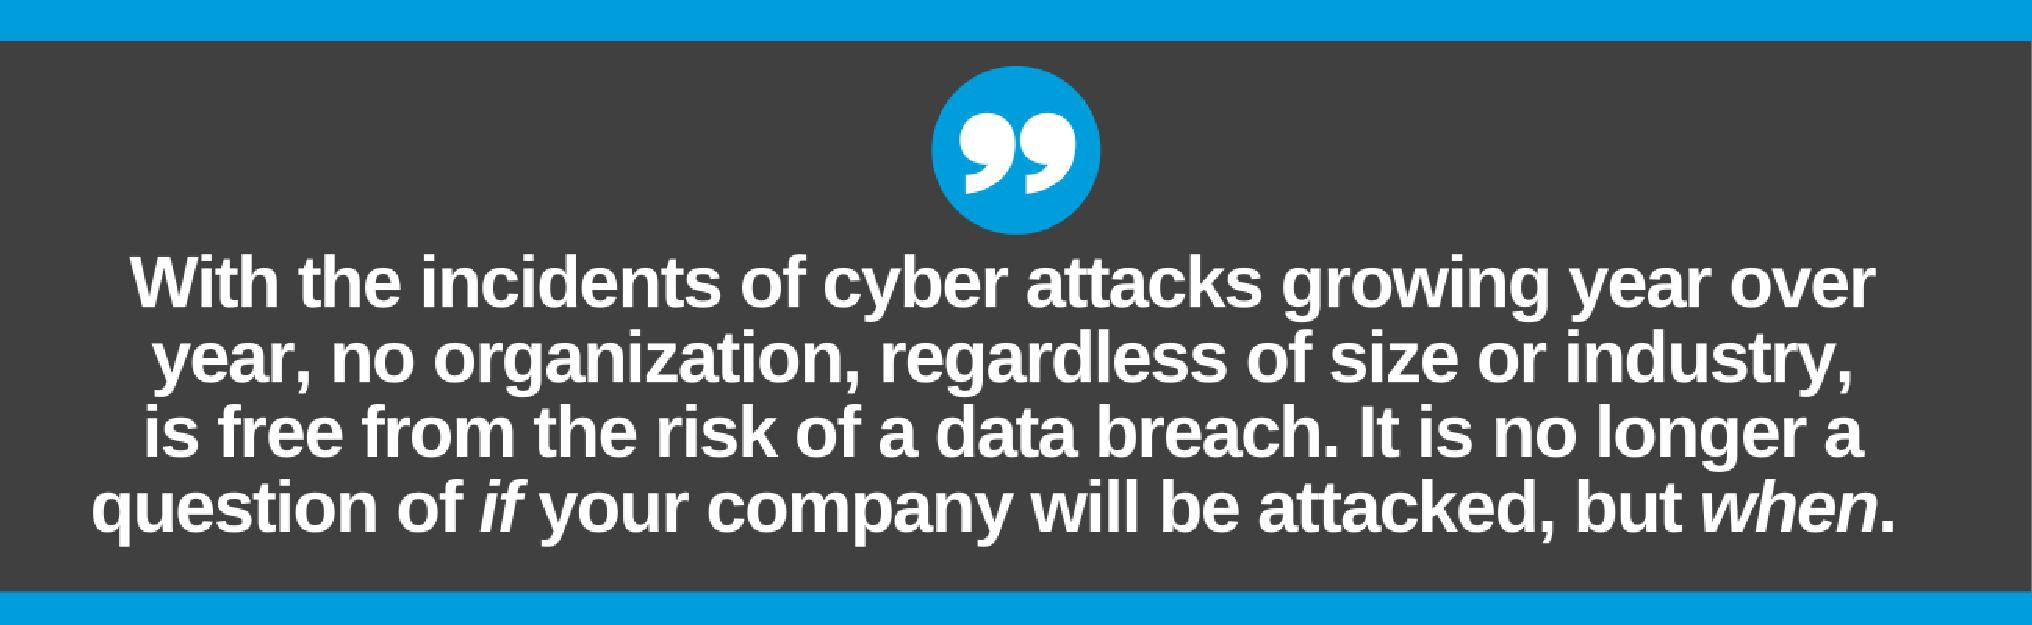 Proactive security approach: 3 tips to prevent cyber attacks